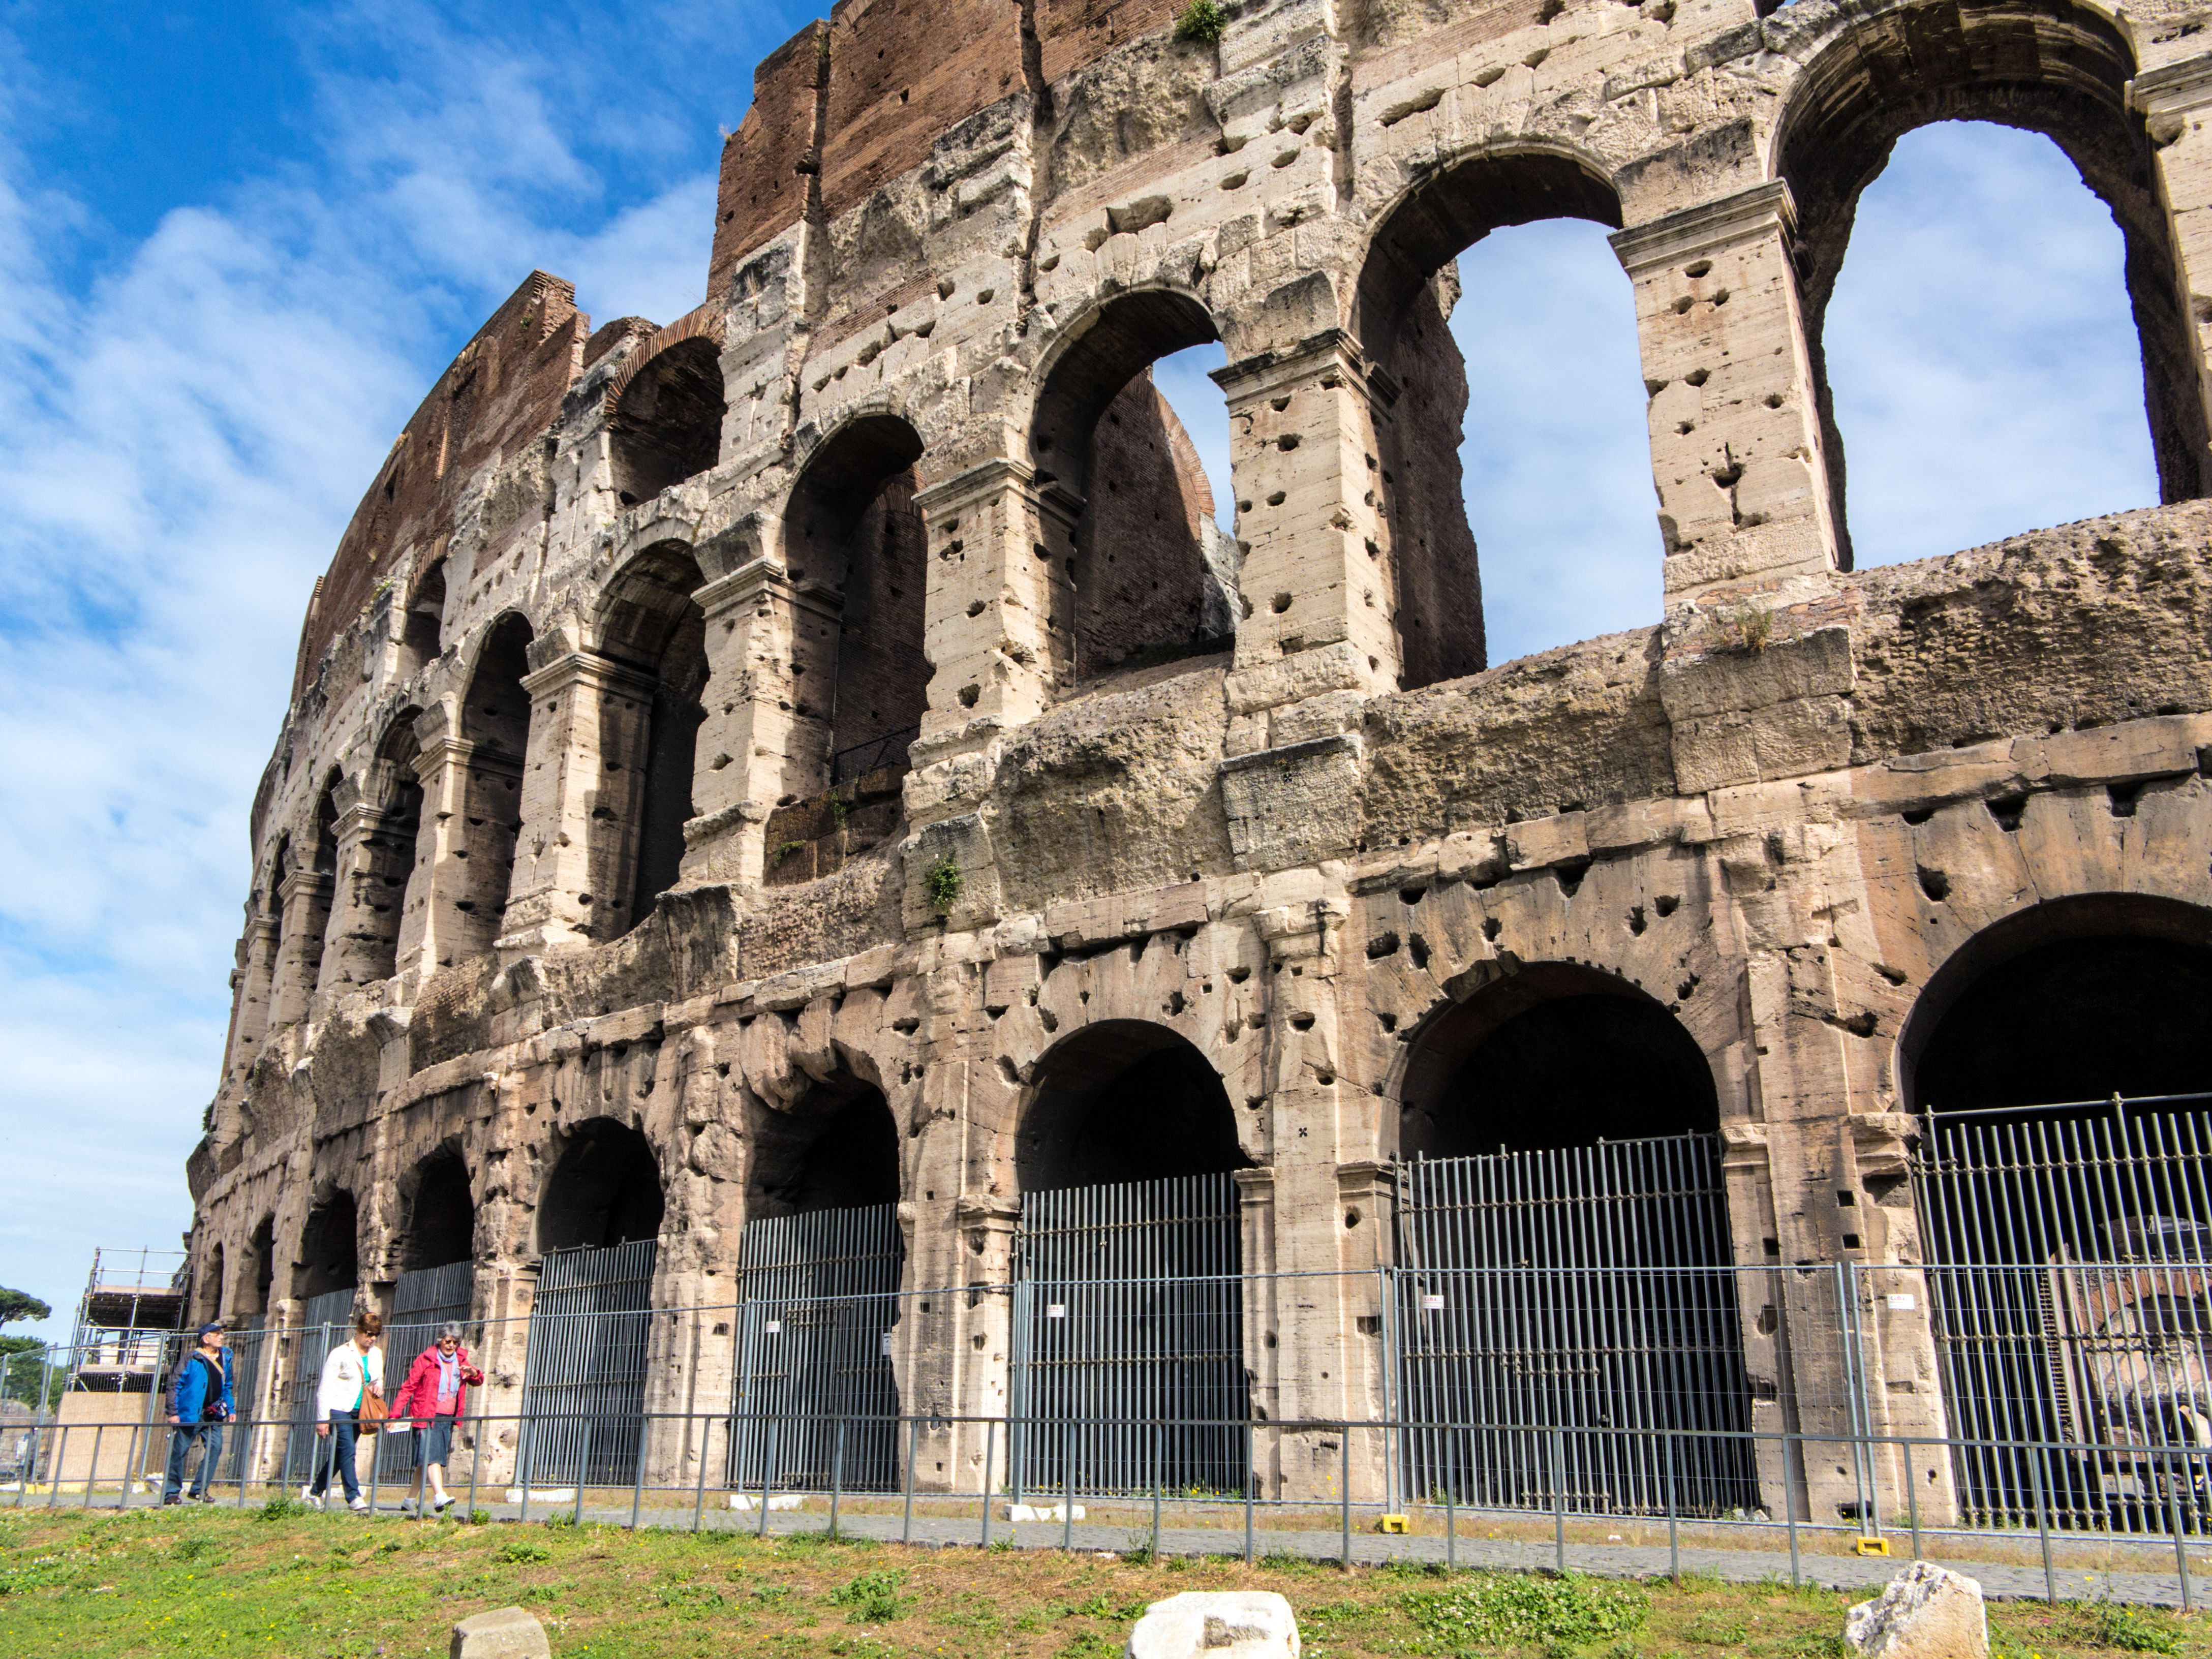 The truly colossal Colosseum